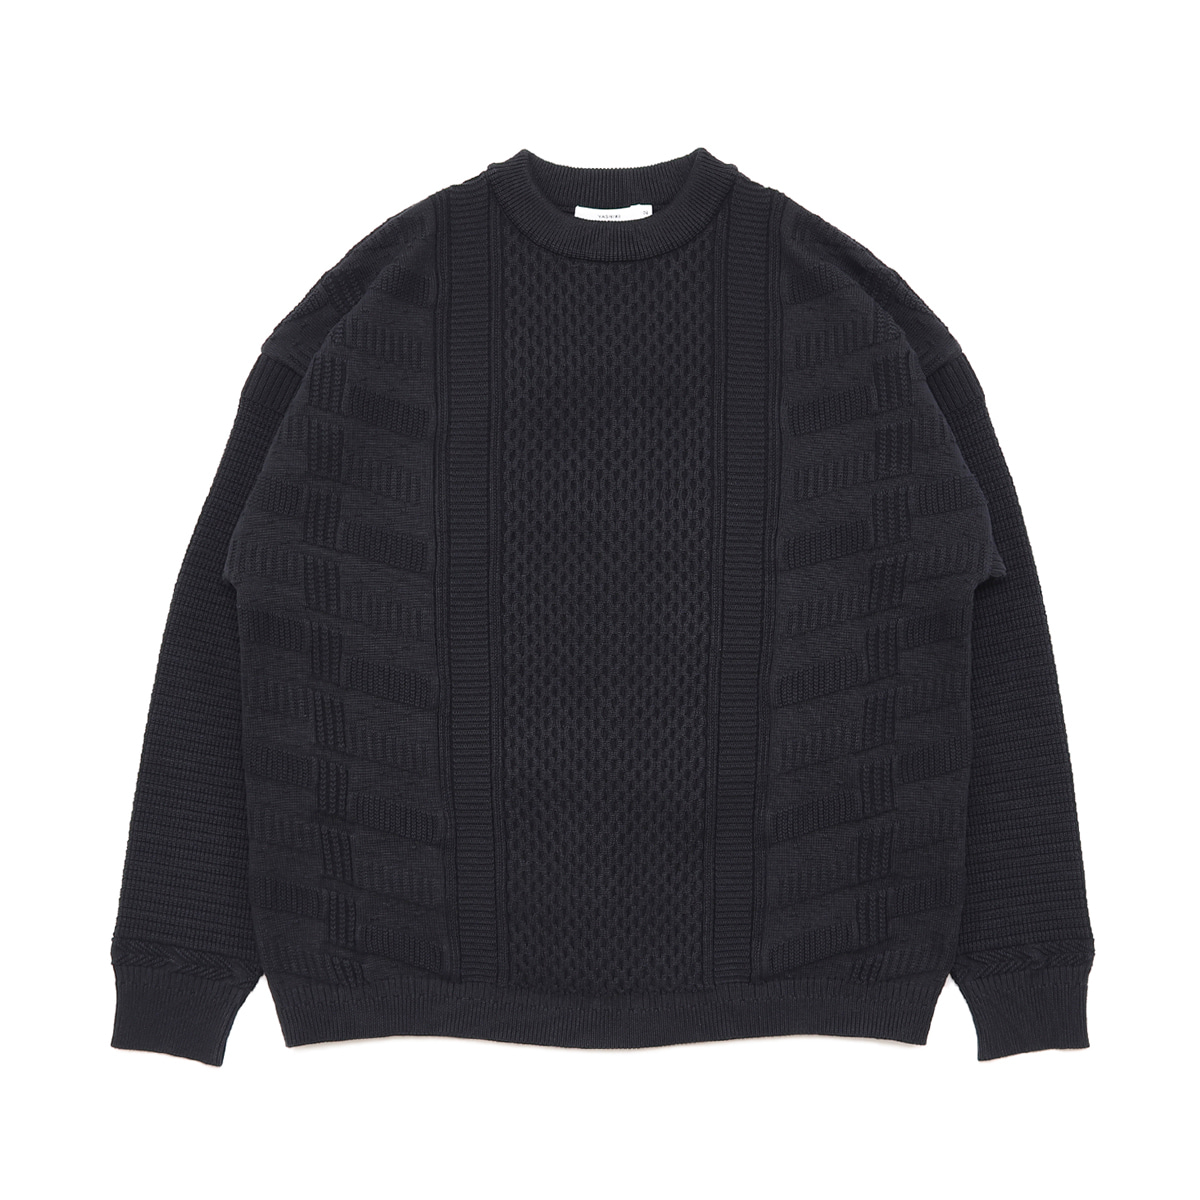 [YASHIKI] ARARE KNIT 'BLACK'